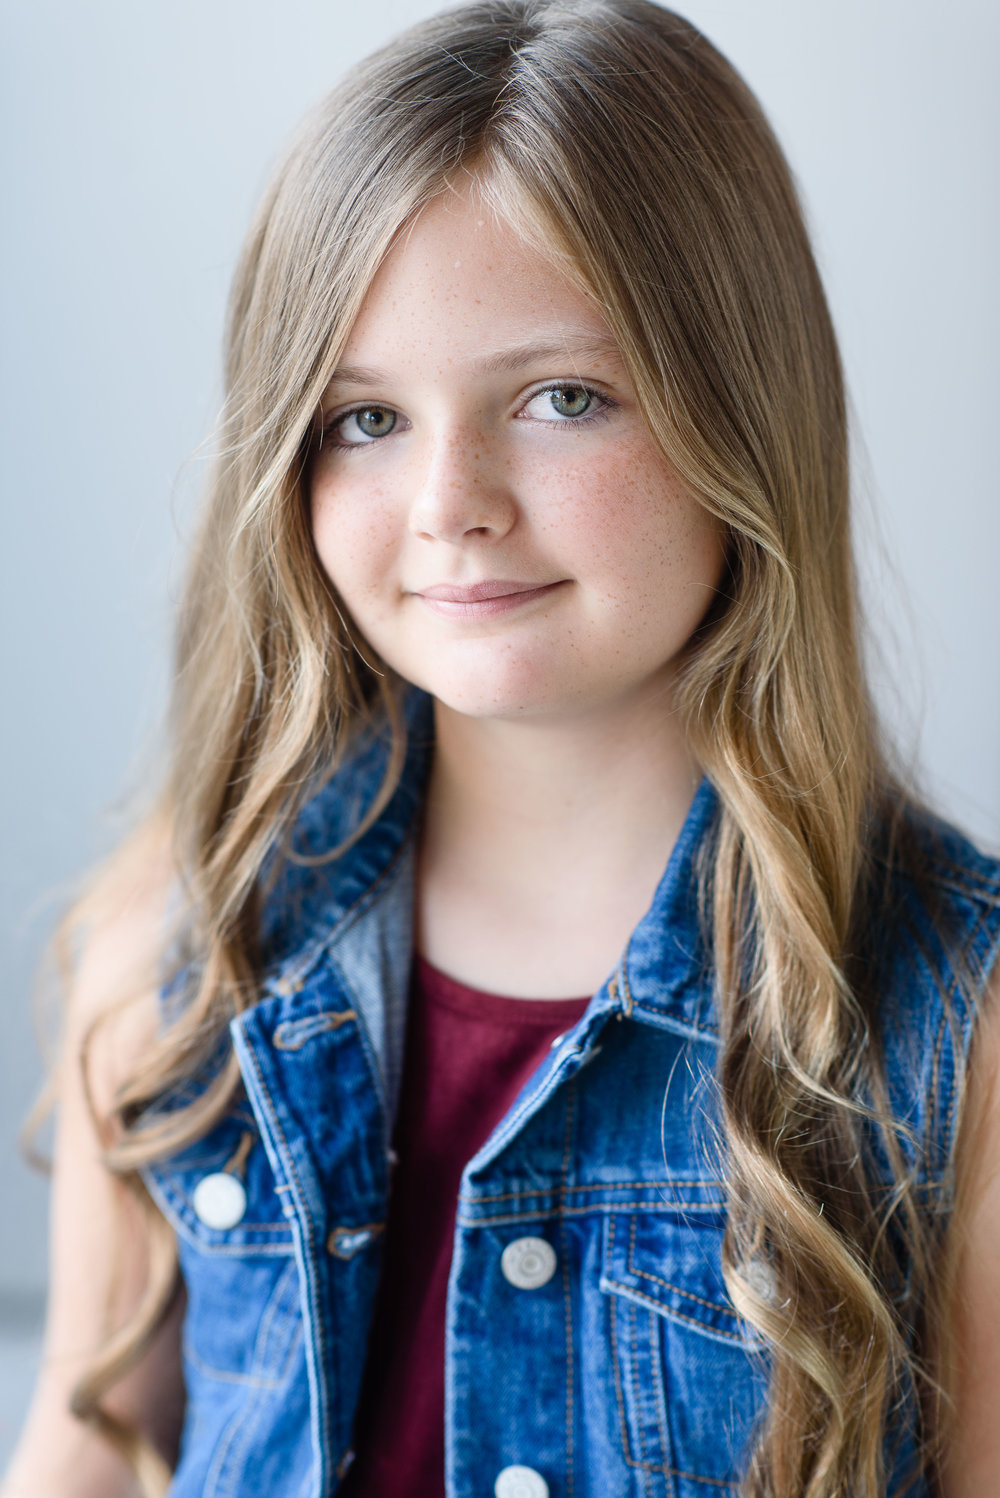 ChildrenHeadshots019.jpg